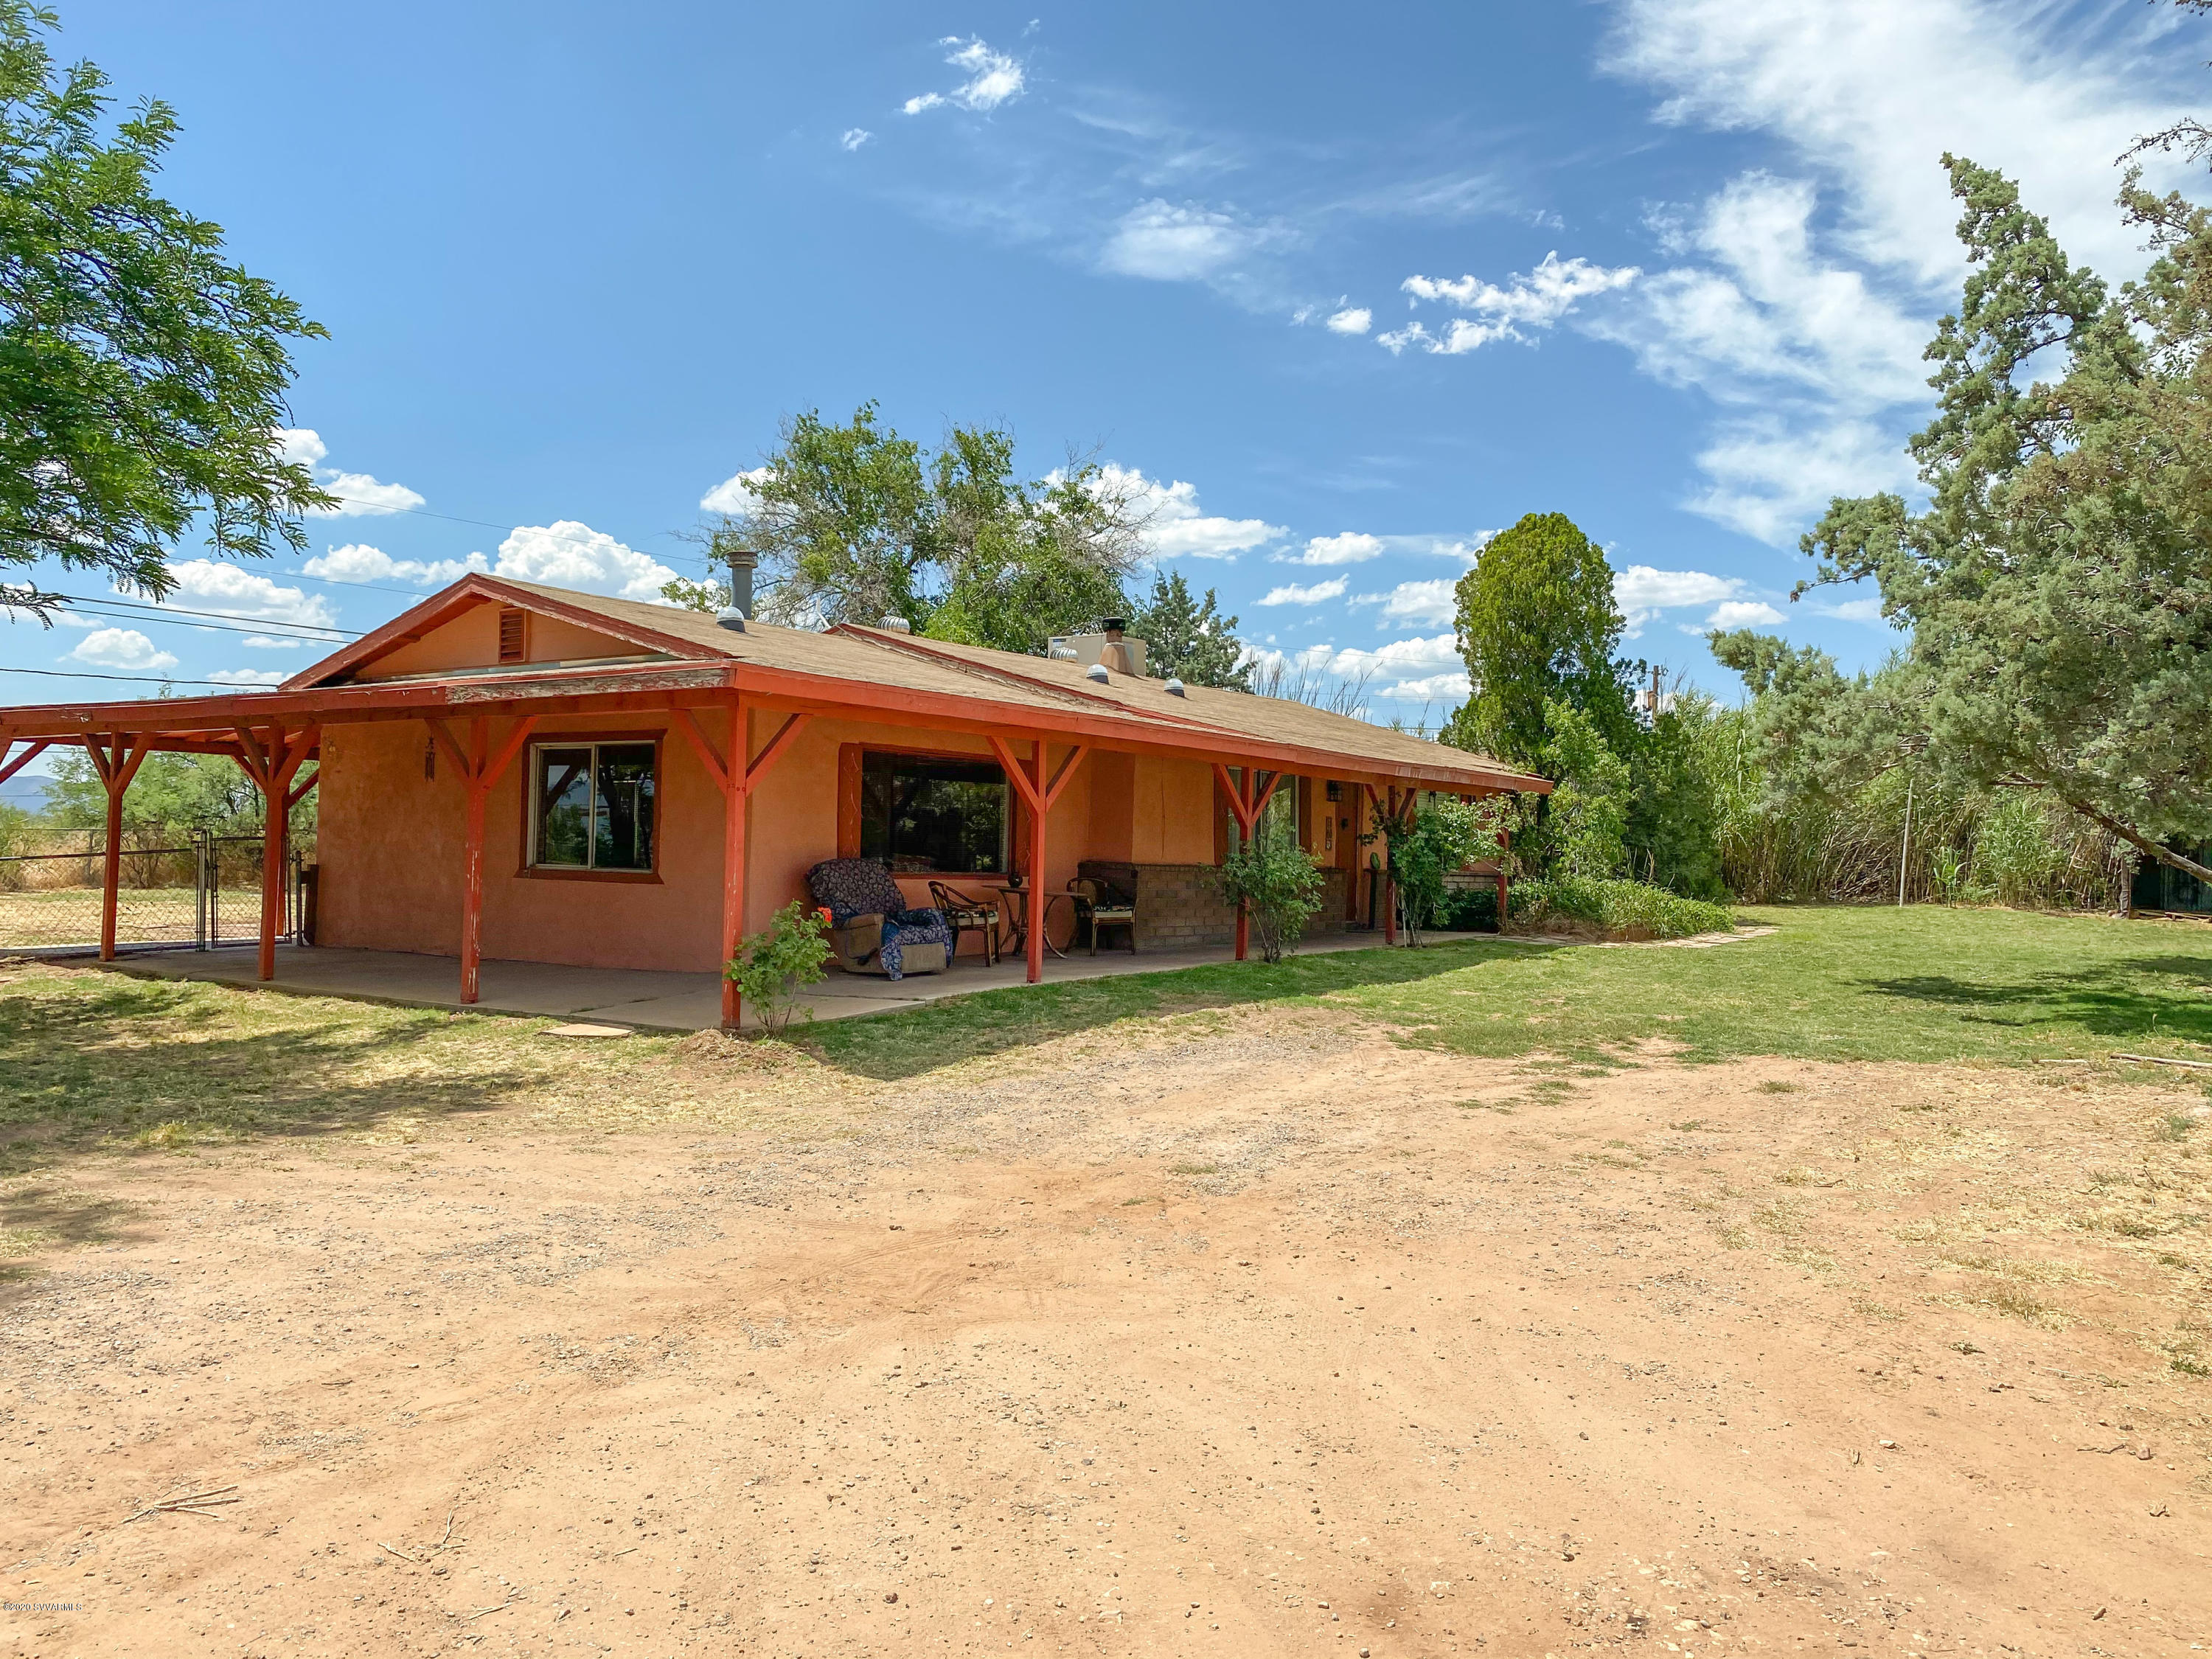 60 N Bright Way Cornville, AZ 86325